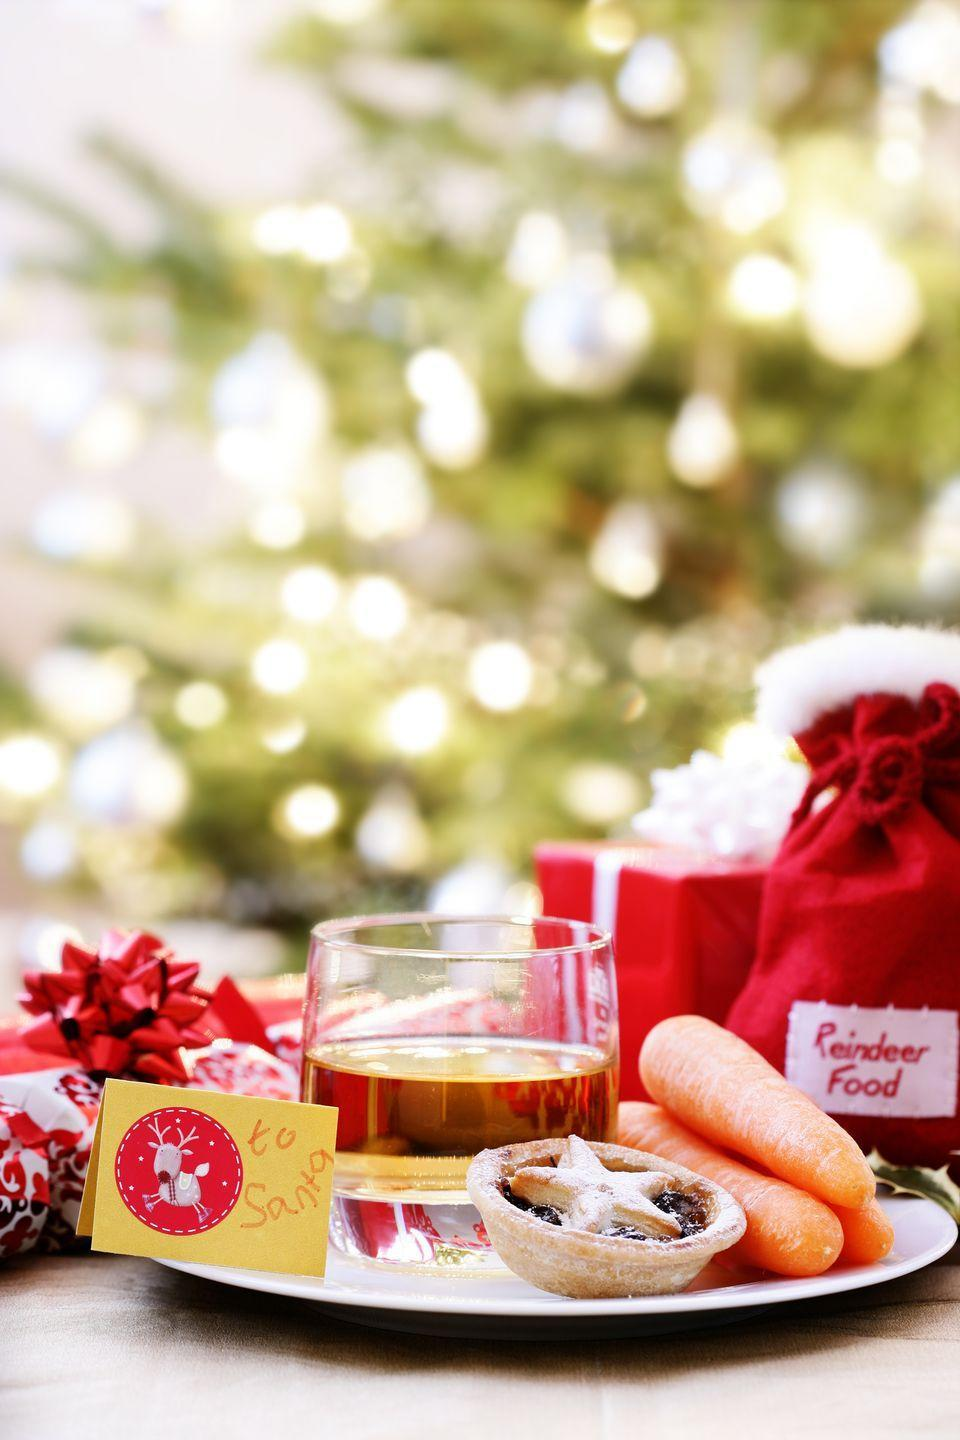 <p>To prepare for their long trip, Santa's reindeer are going to need food too. Just grab carrots, oats, and anything else in your pantry to mix up a bag for Rudolph and his friends.</p>